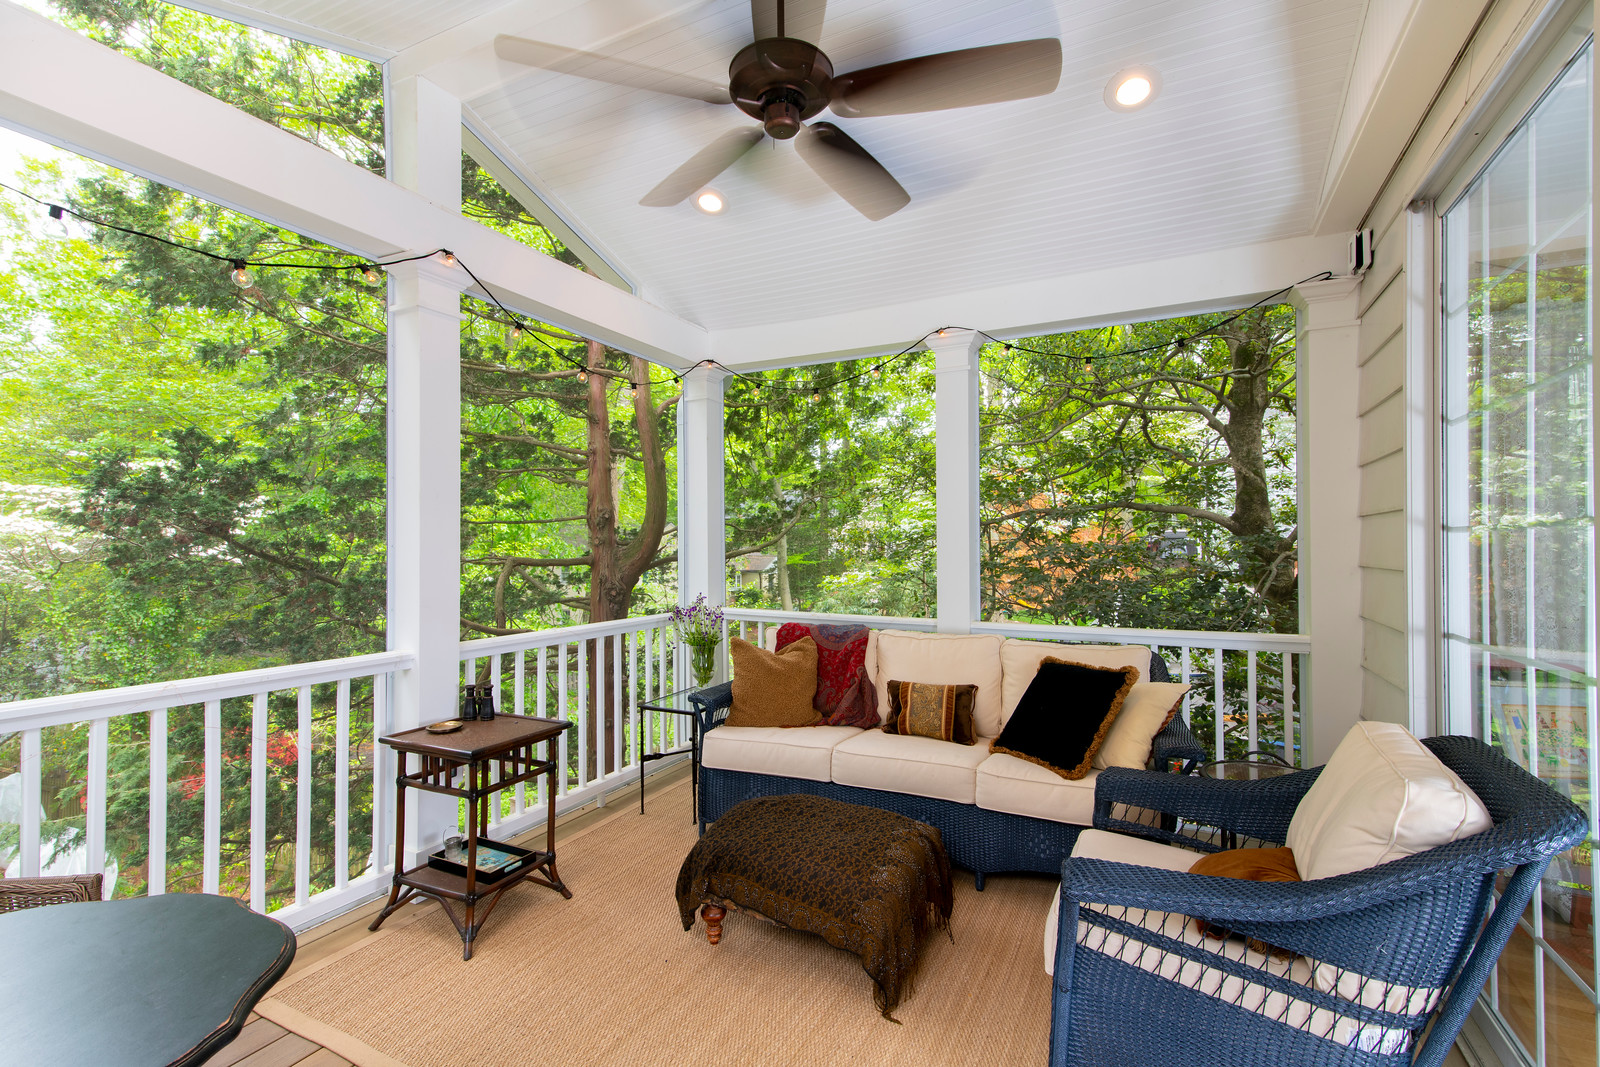 chevy chase 2 story deck screened porch 7